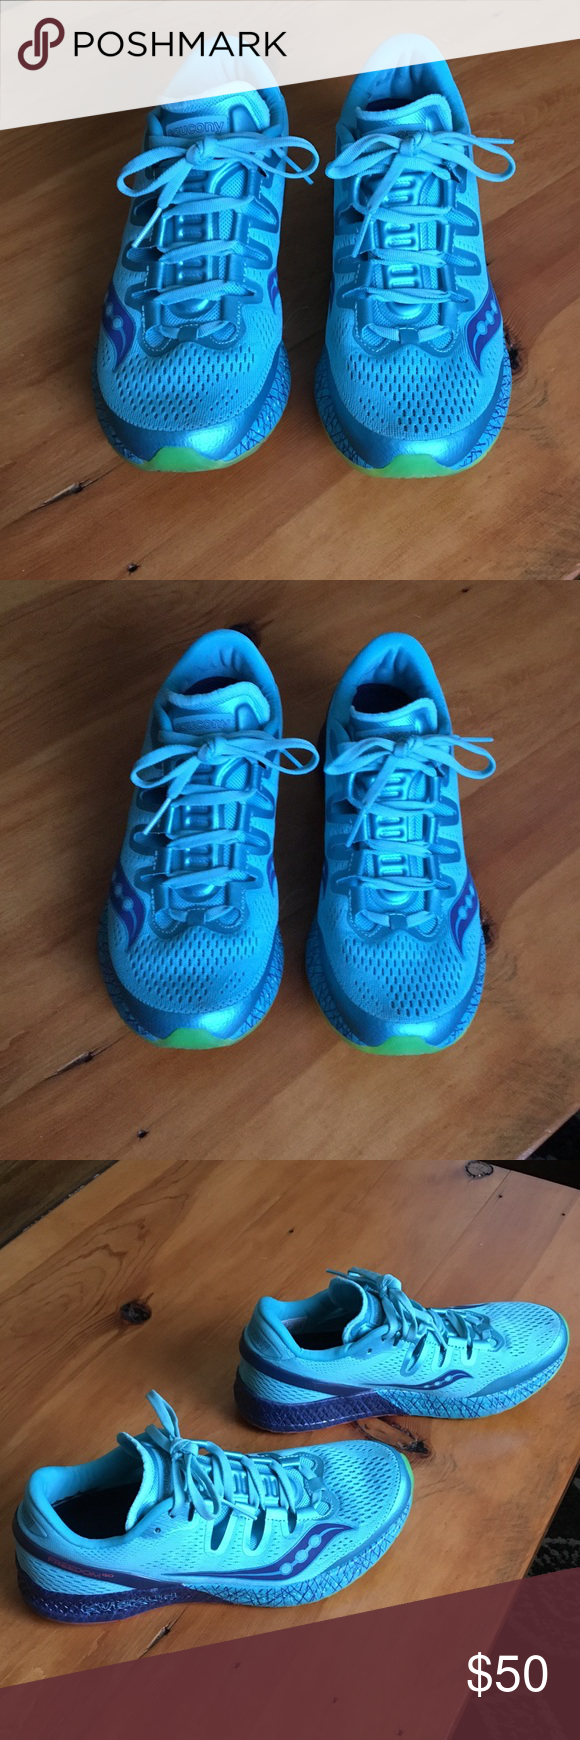 New Saucony Freedom Iso Road Running Shoes Road Running Shoes Saucony Running Shoes Running Shoes